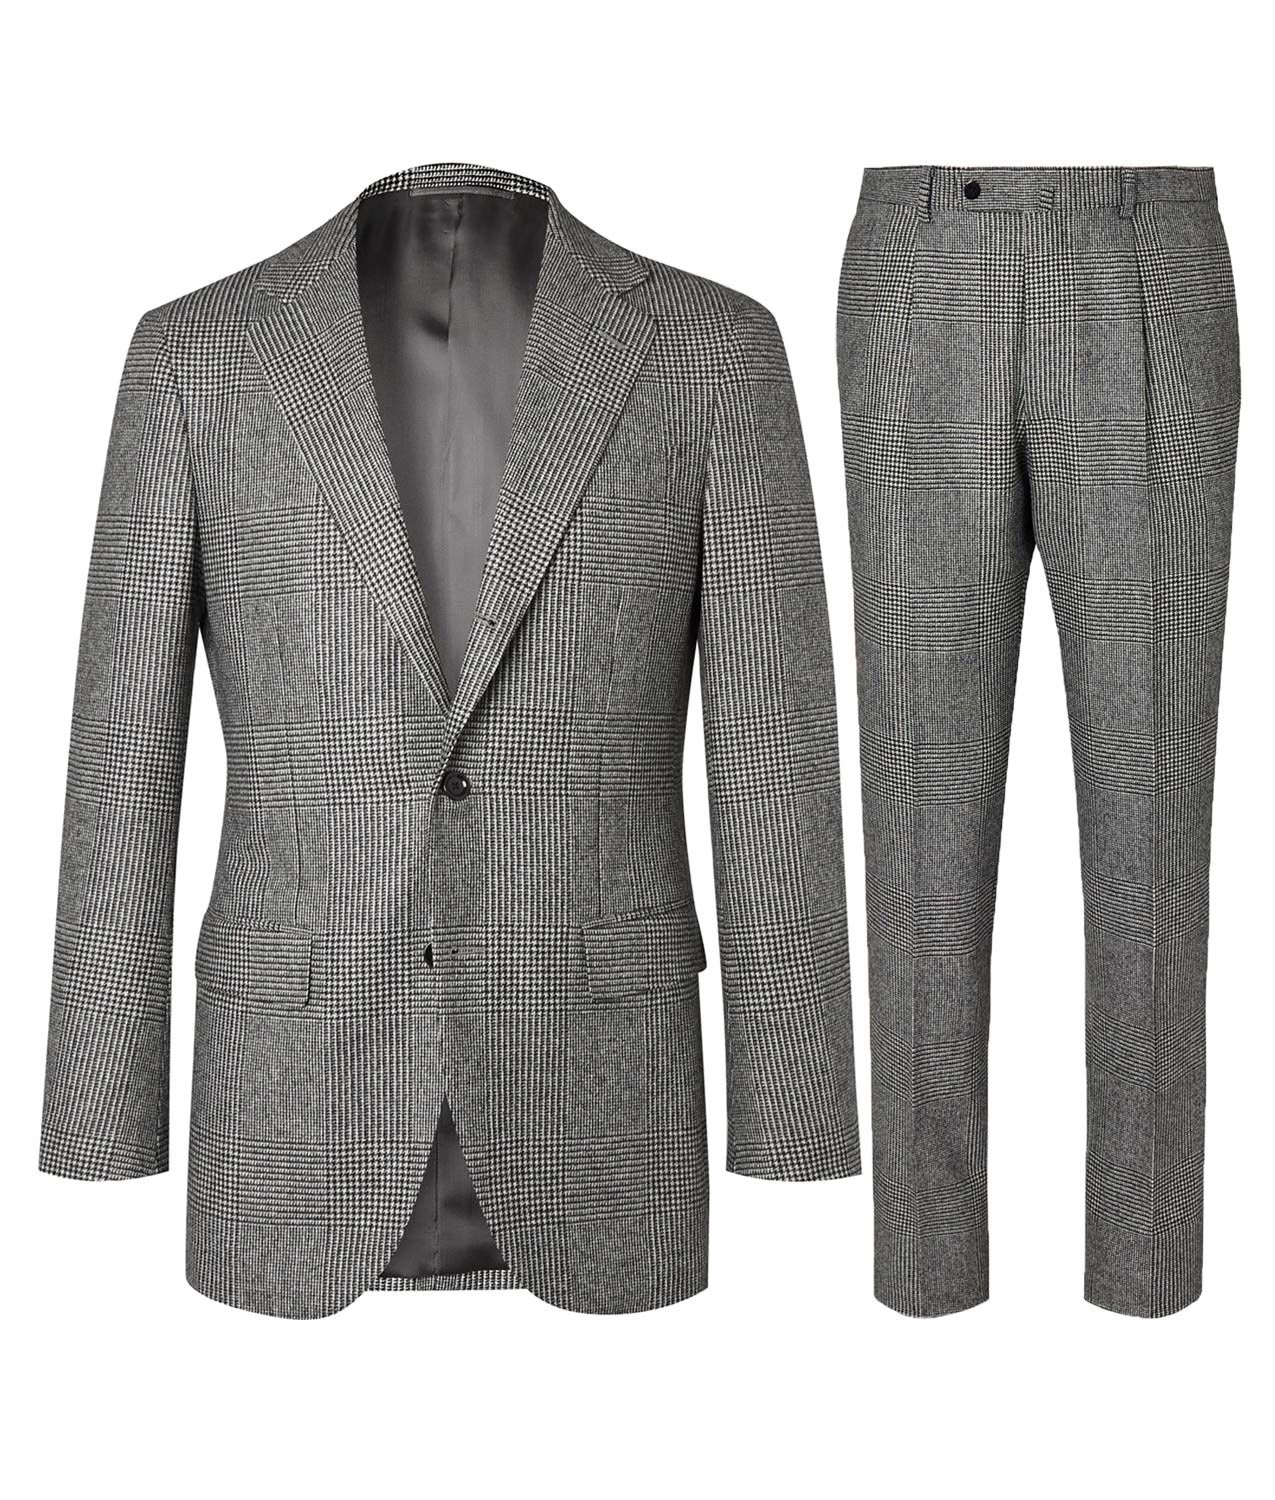 No Time To Die Grey Glen-Check Suit